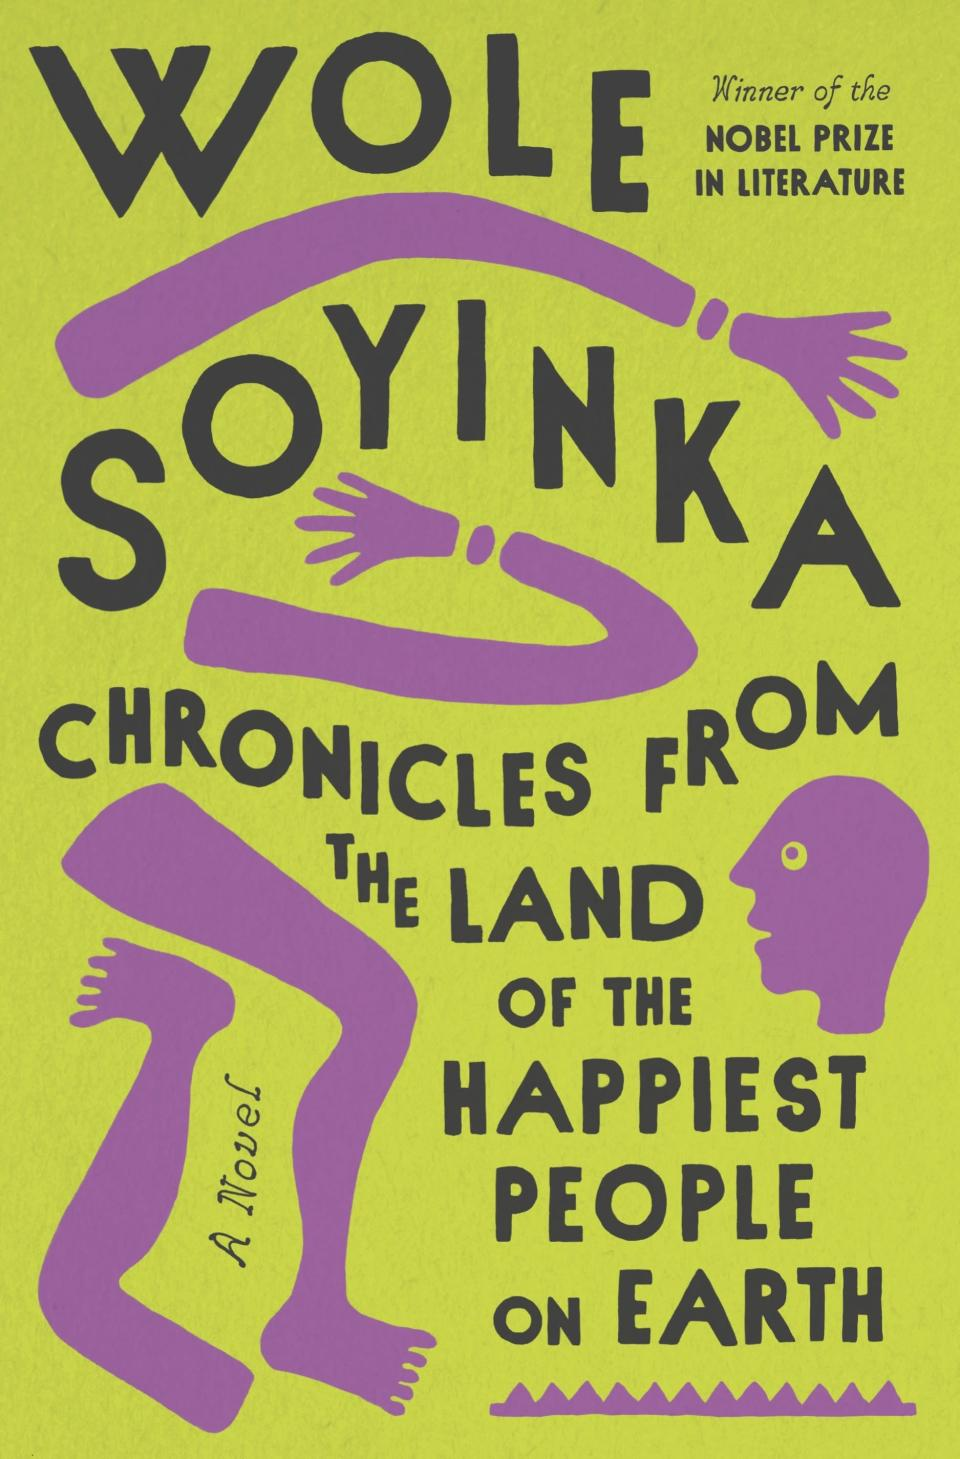 """This cover image released by Pantheon shows """"Chronicles from the Land of the Happiest People on Earth,"""" a novel by Wole Soyinka, releasing Sept. 28. (Pantheon via AP)"""